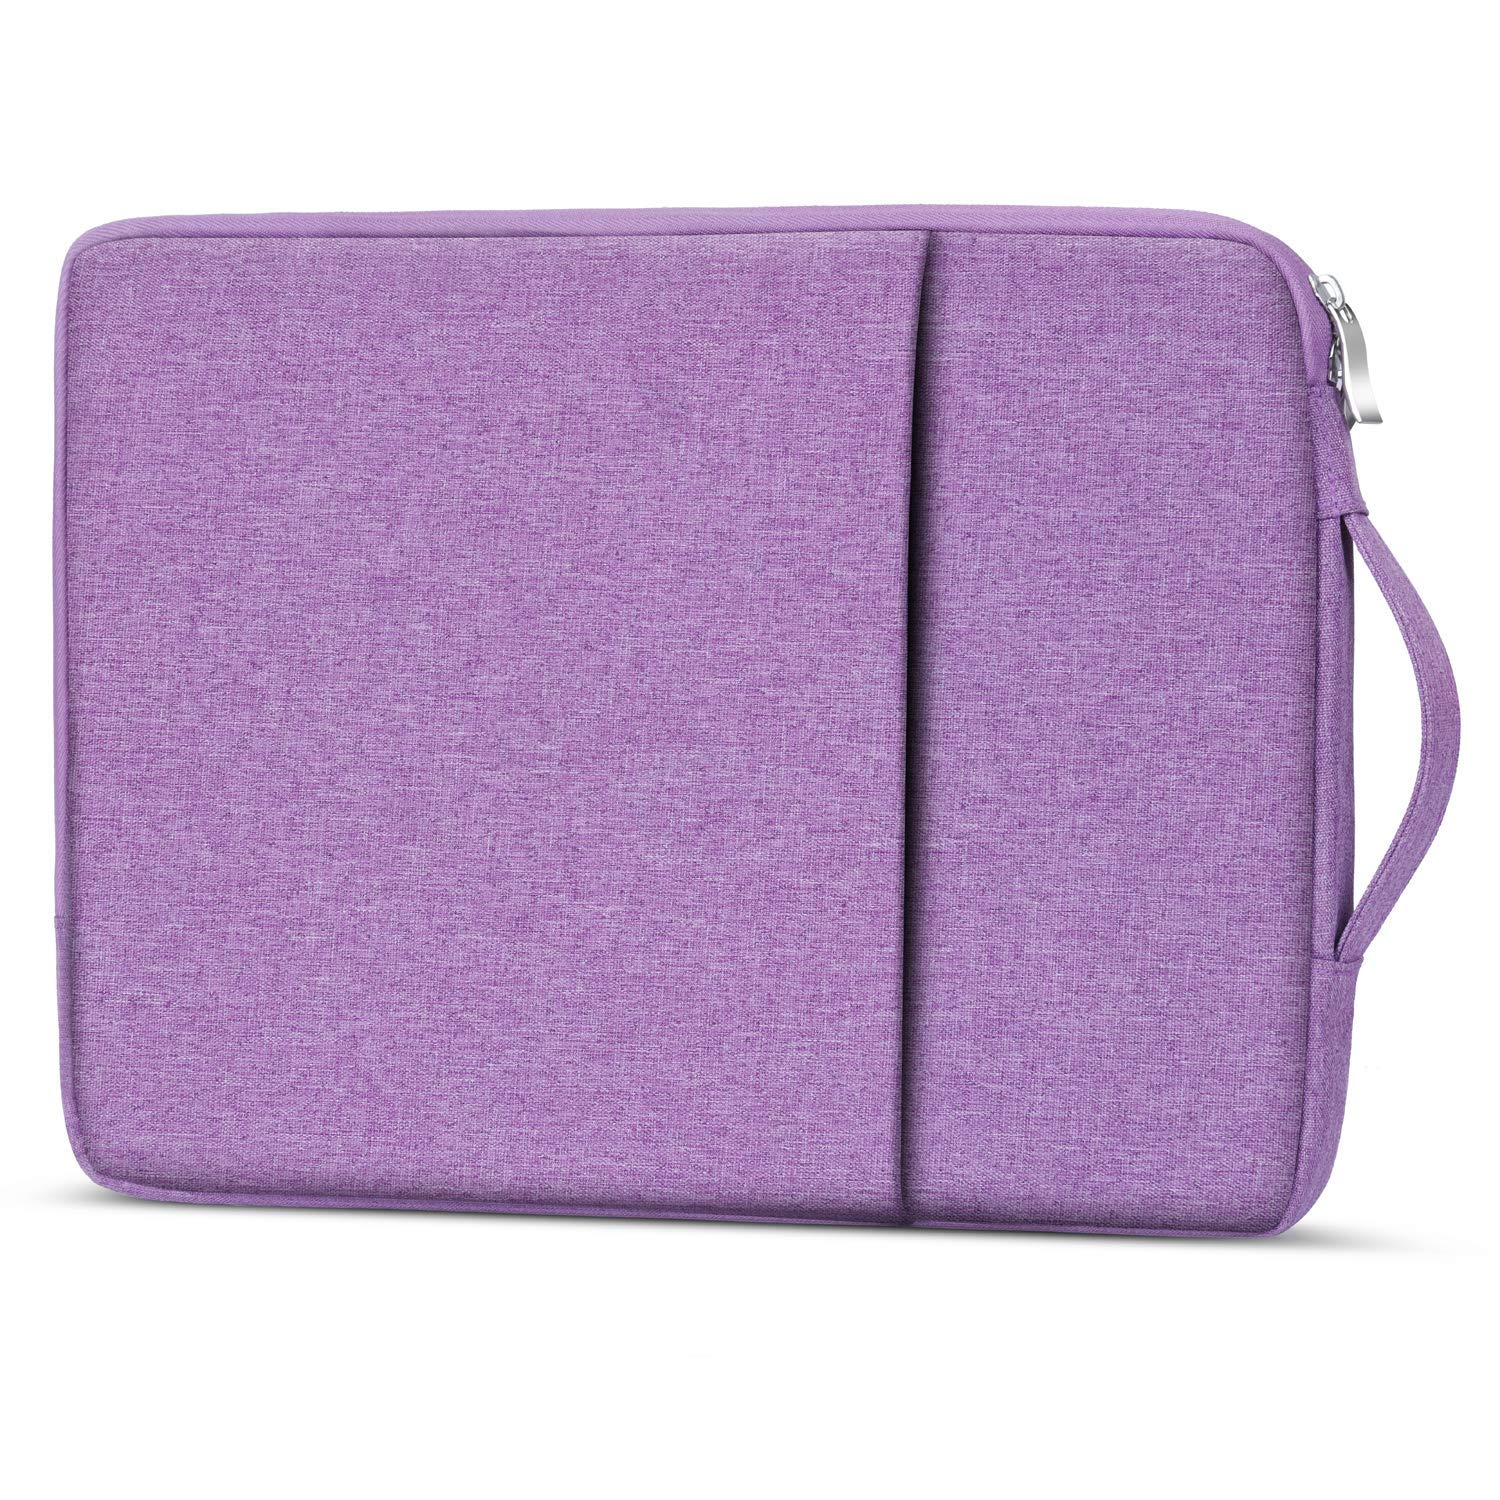 Amazon.com: Laptop Sleeve Protective Case Bag with Handle ...